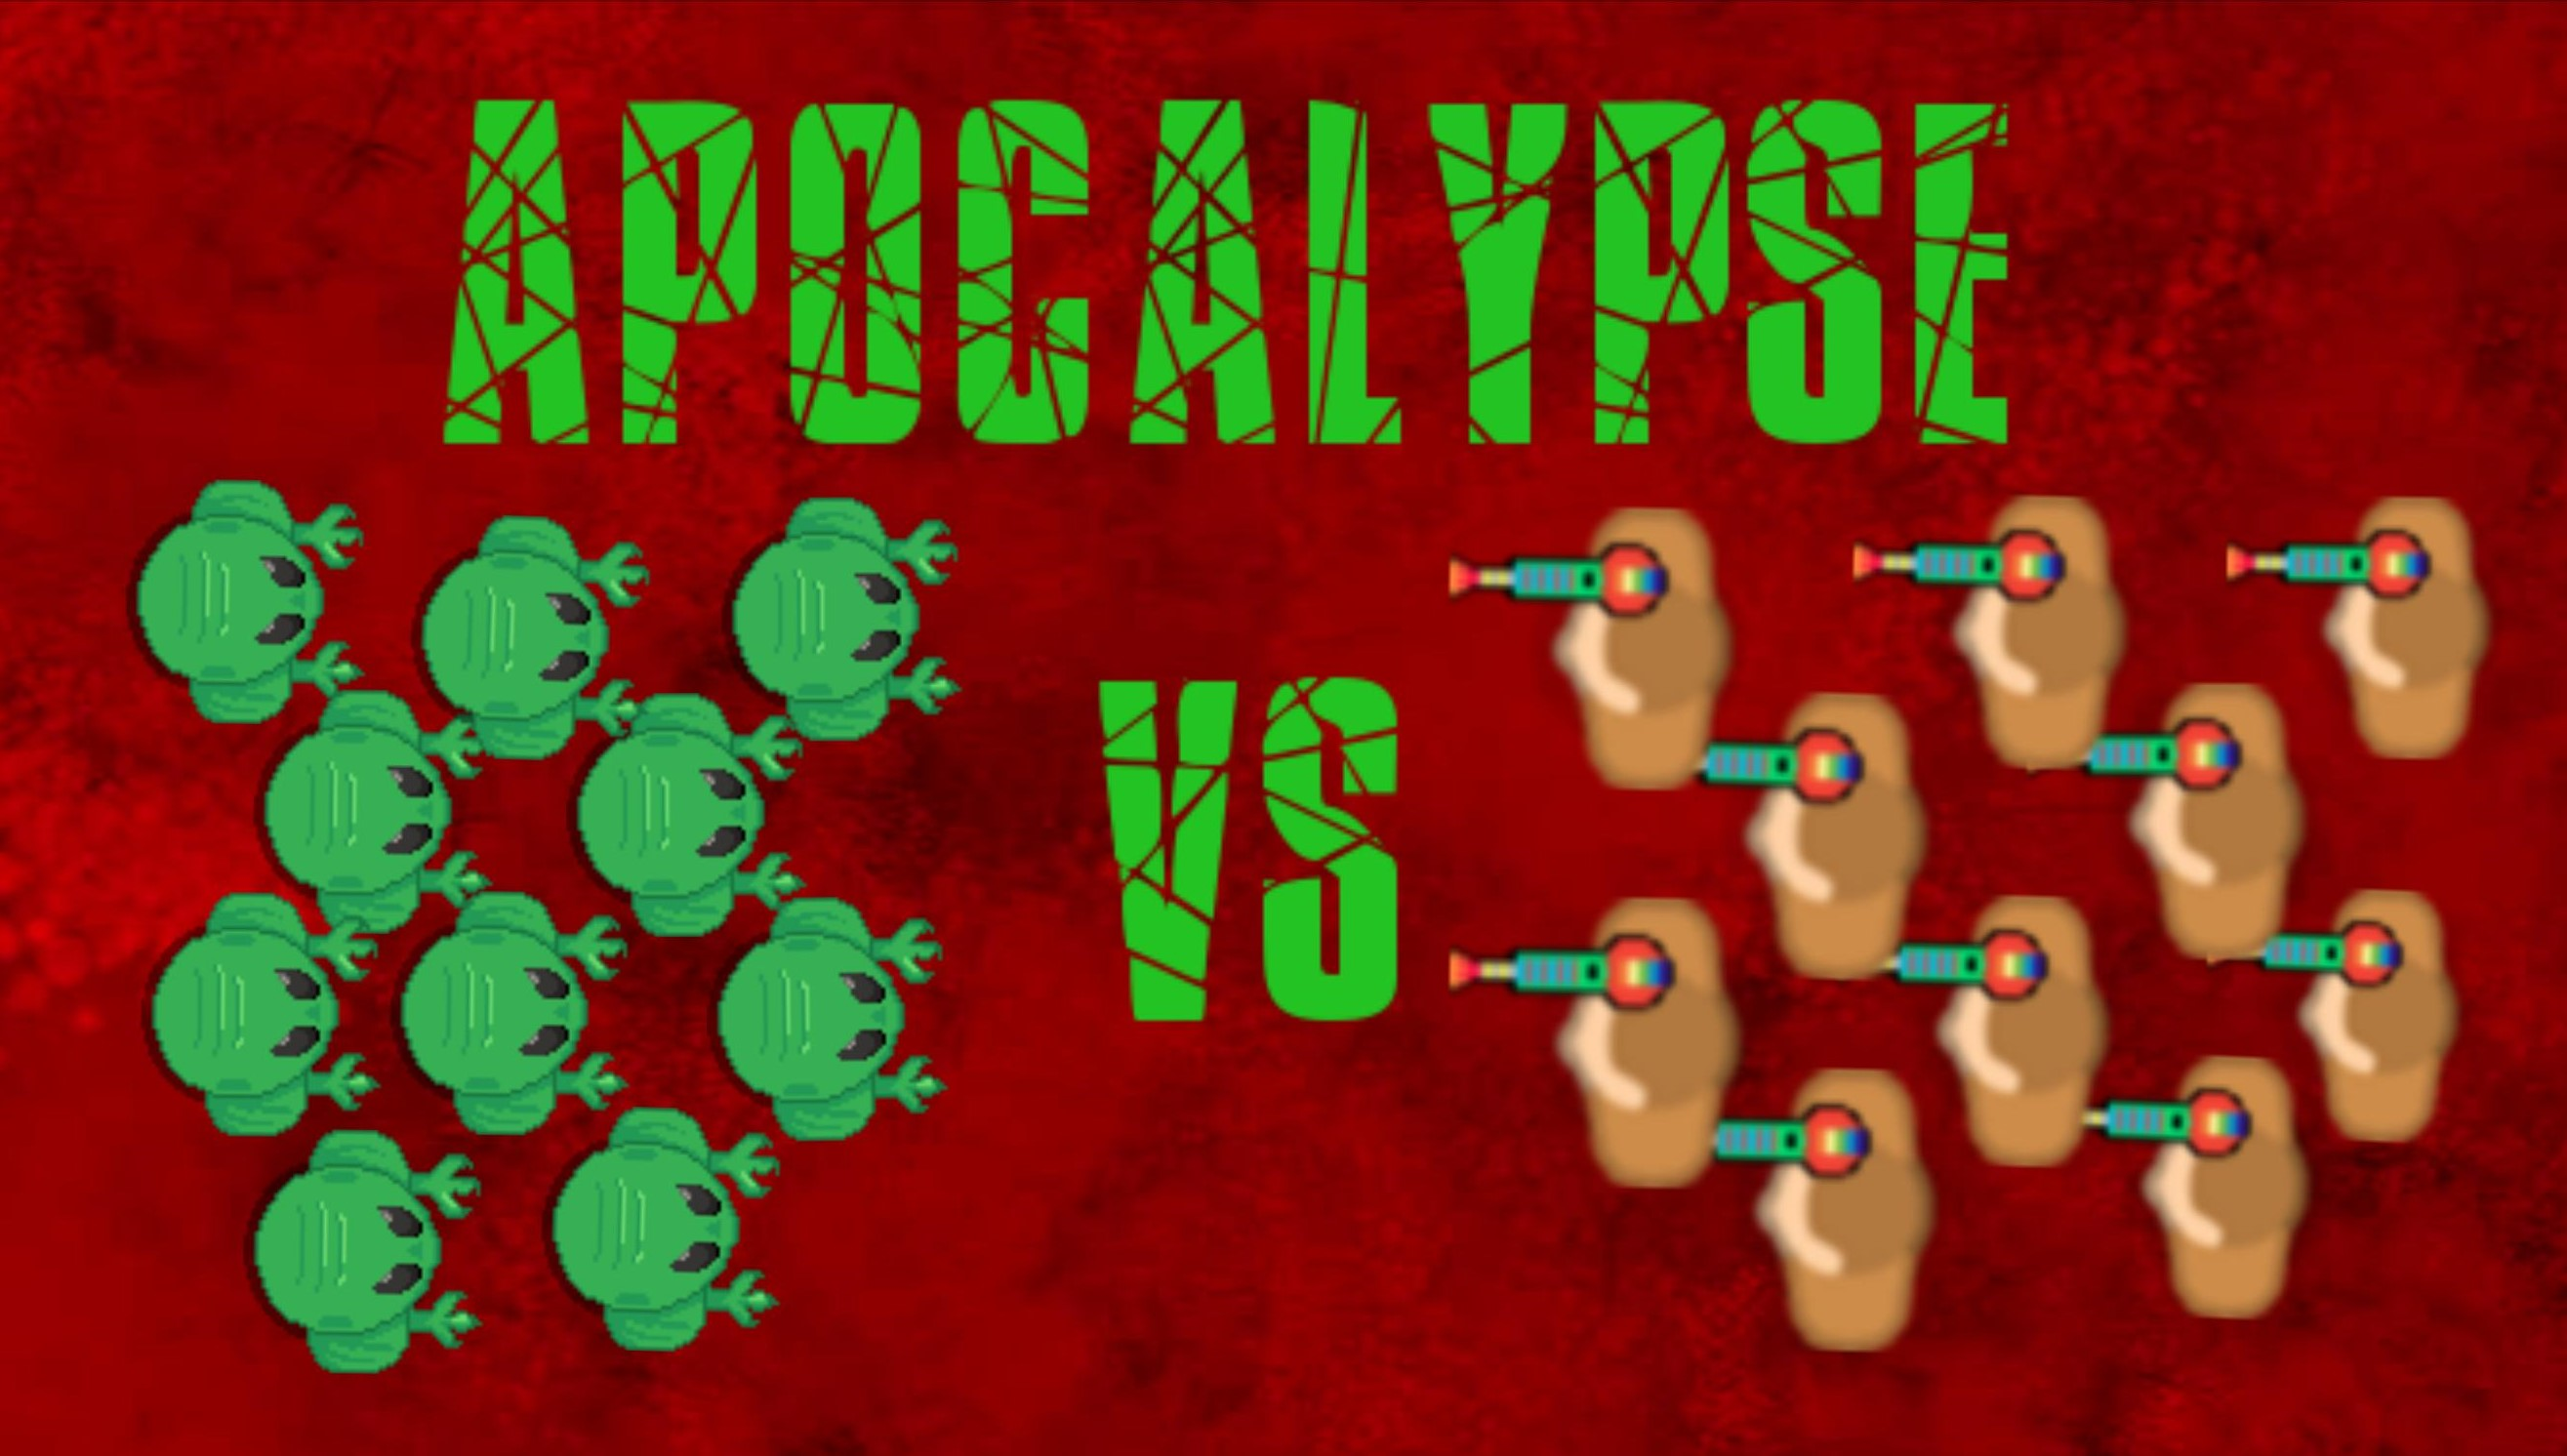 Apocalyps.io (After Area 51)!